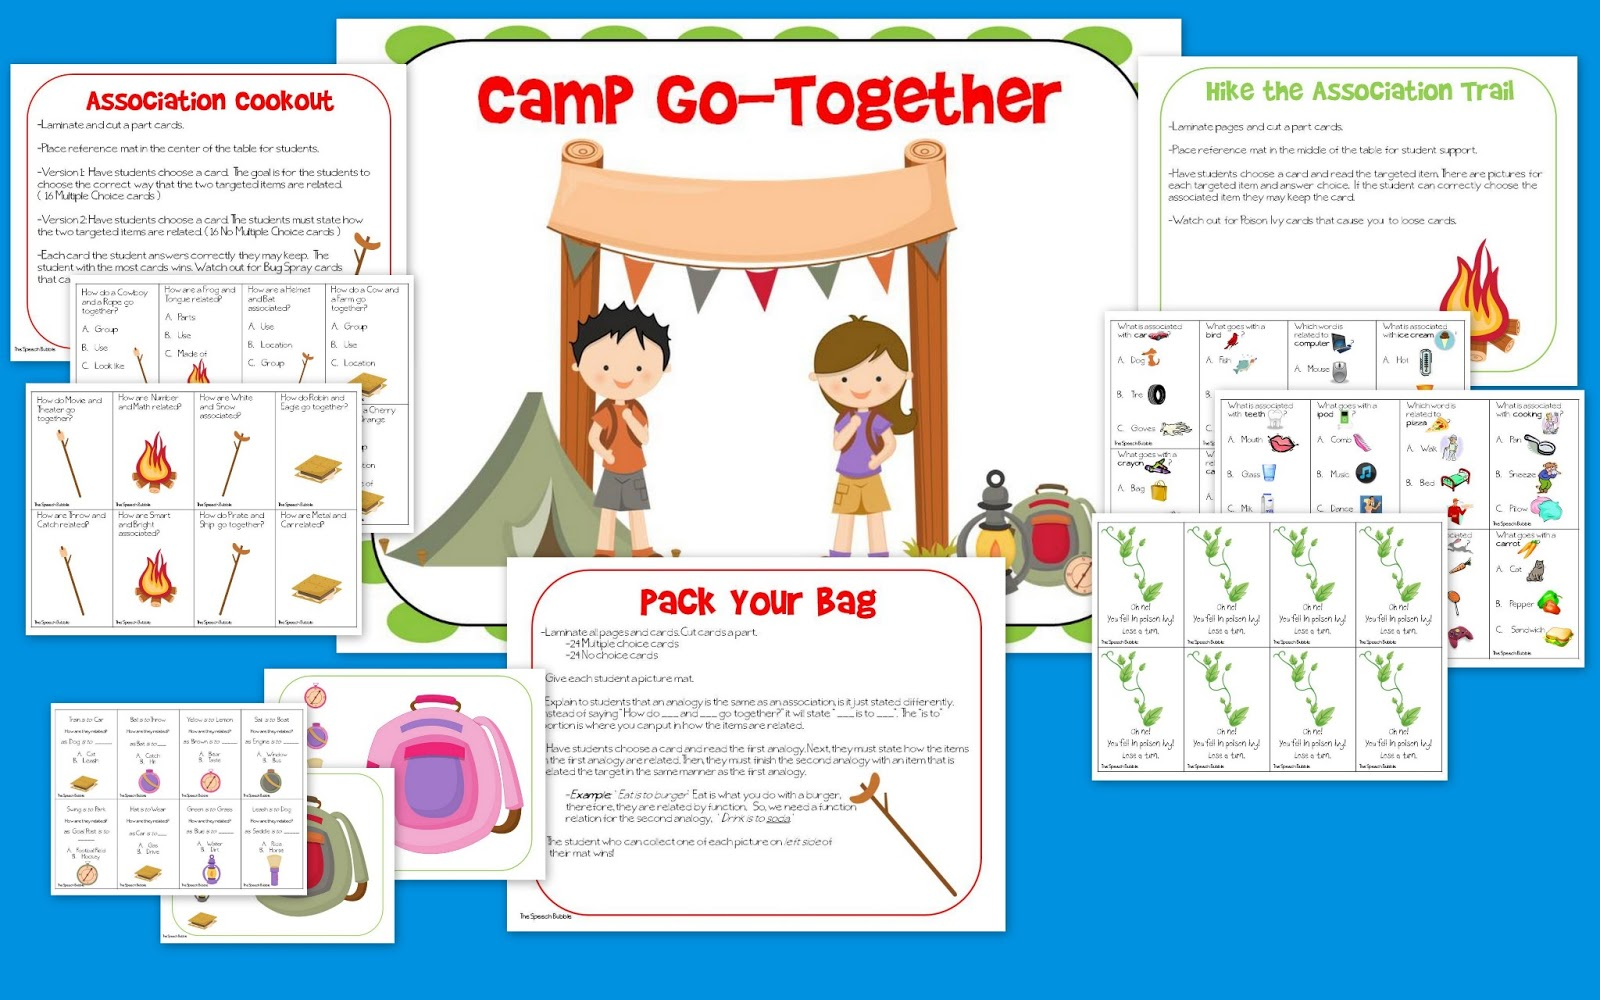 Camp Go-Together: Associations and Analogies